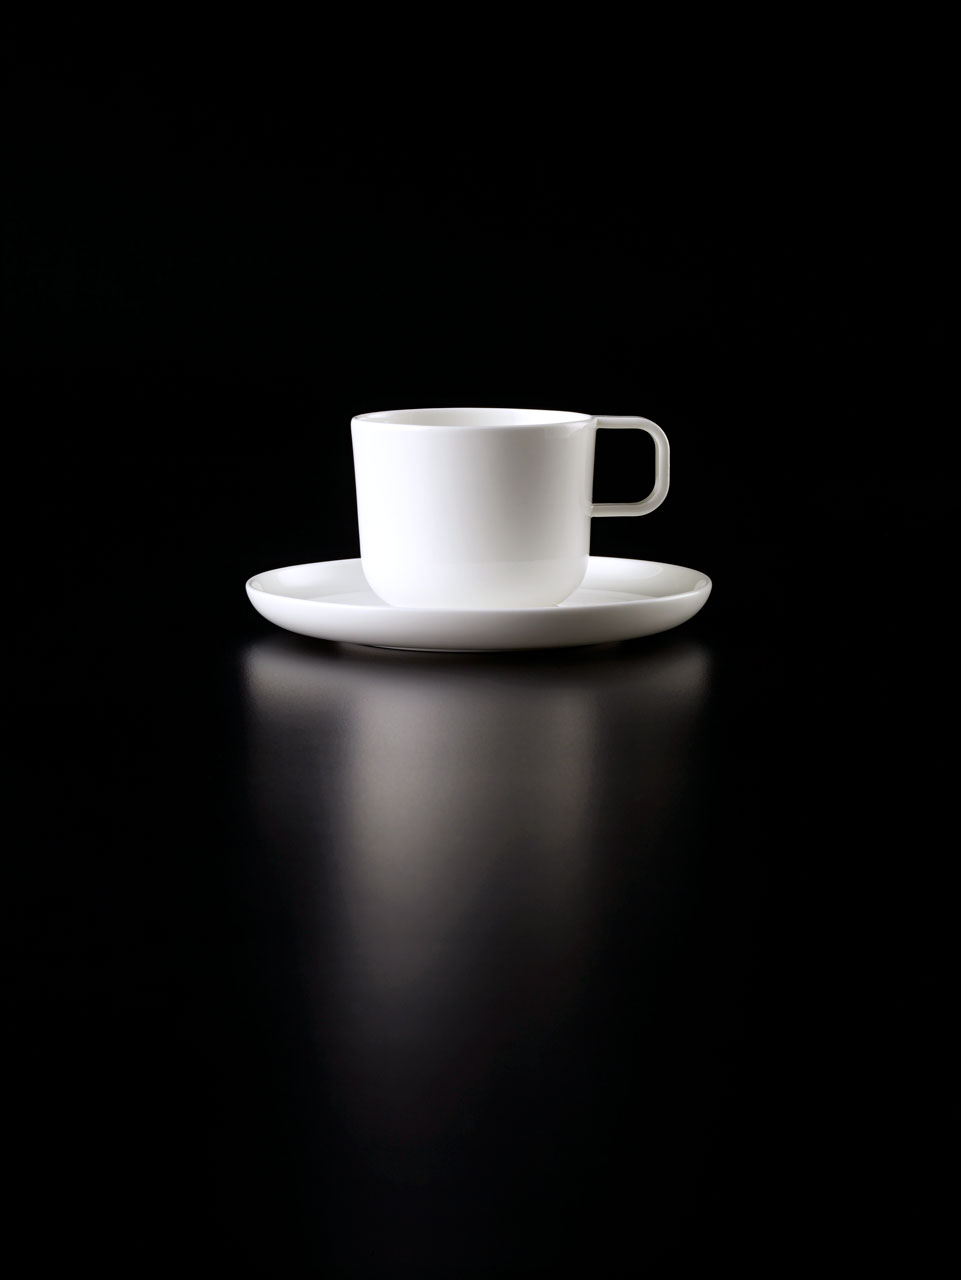 Bent Brandt - TABL white bone china S2 cup on S2 saucer